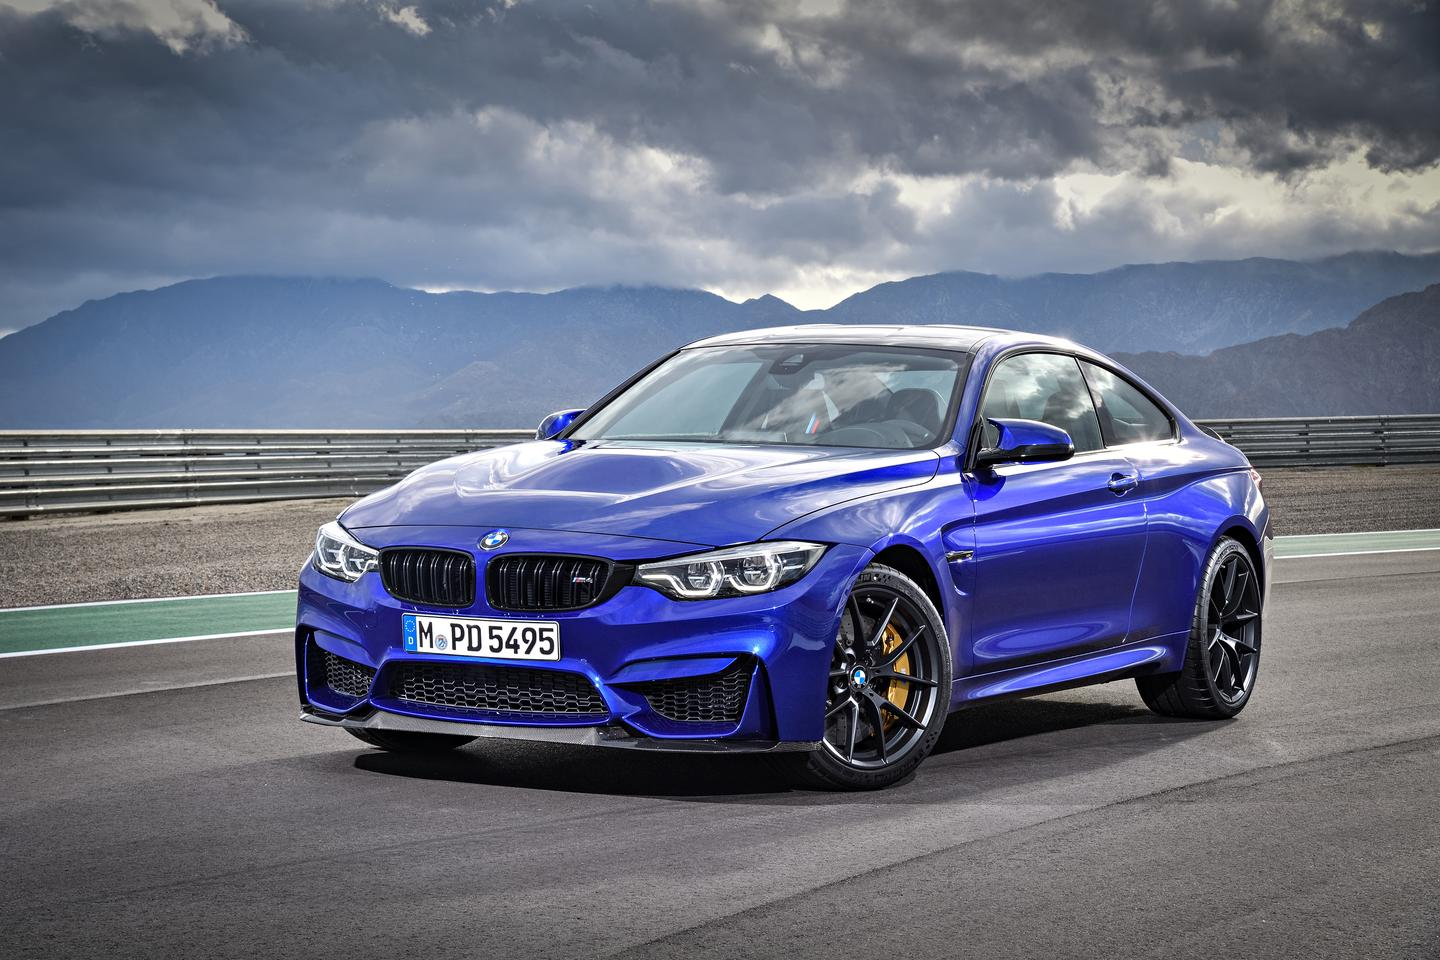 The new BMW M4 CS, launched in Shanghai